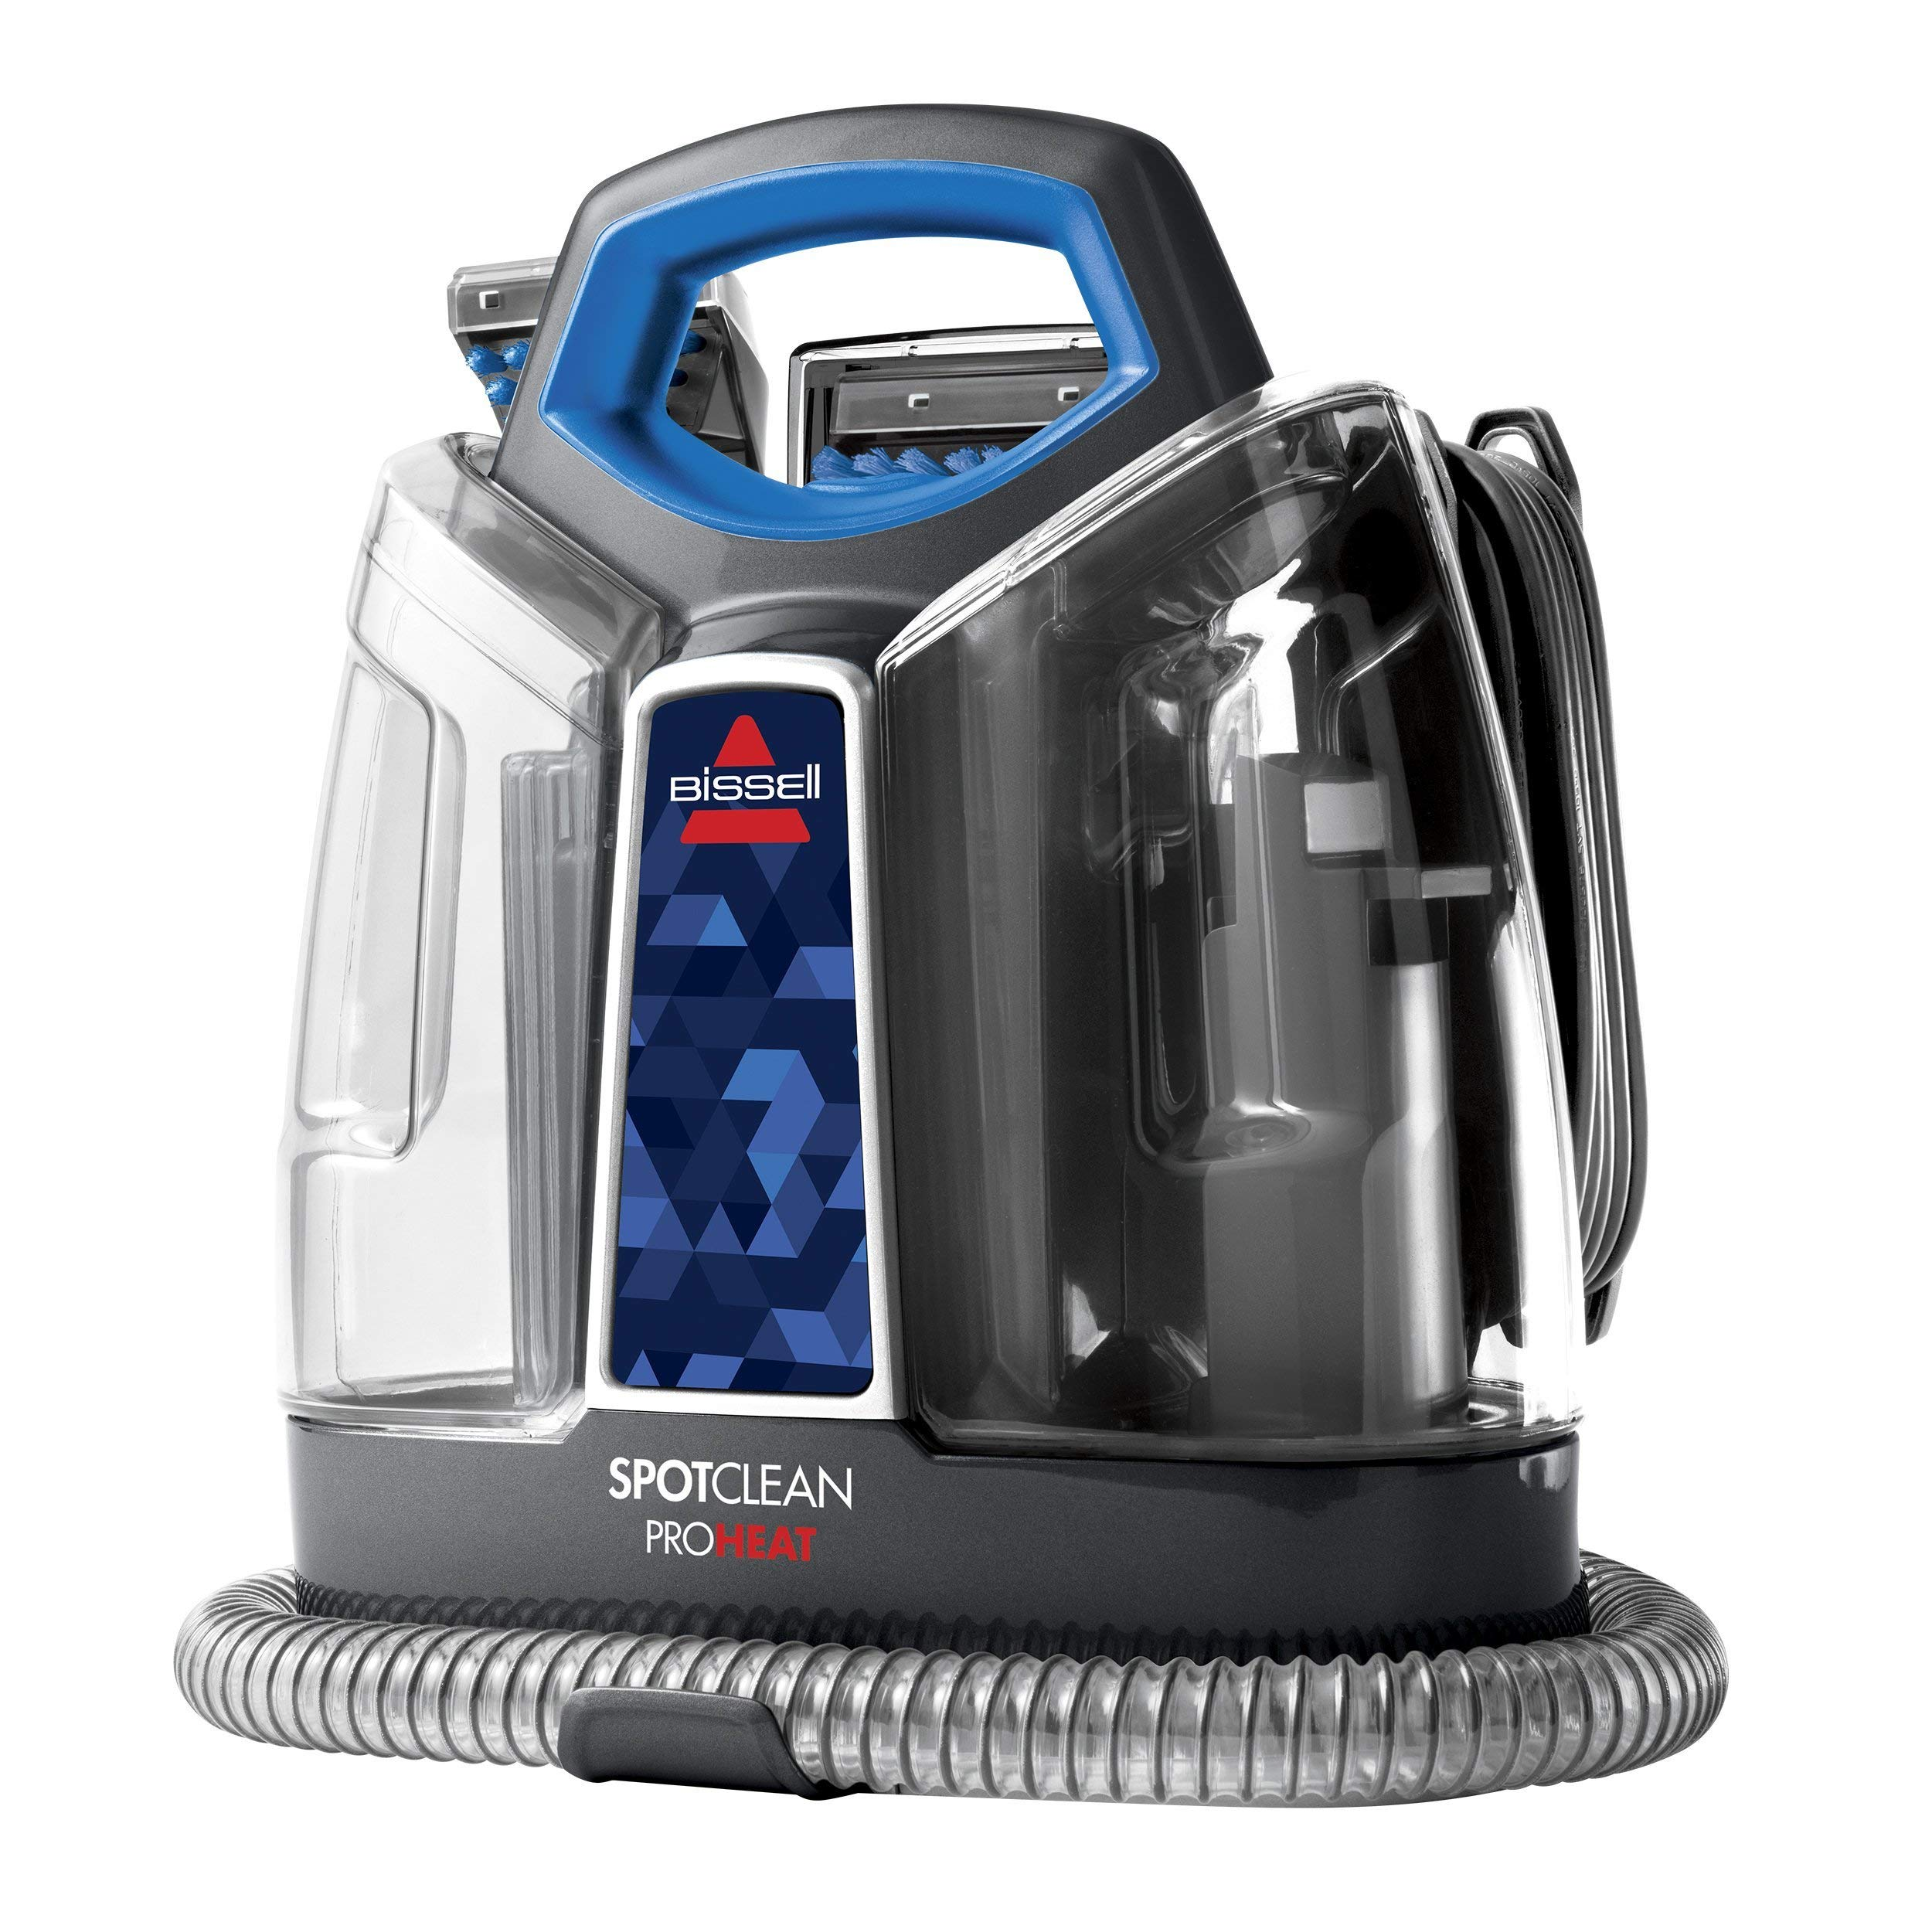 BISSELL SpotClean ProHeat 5207N Portable Deep Cleaner, Blue (Renewed) by Bissell